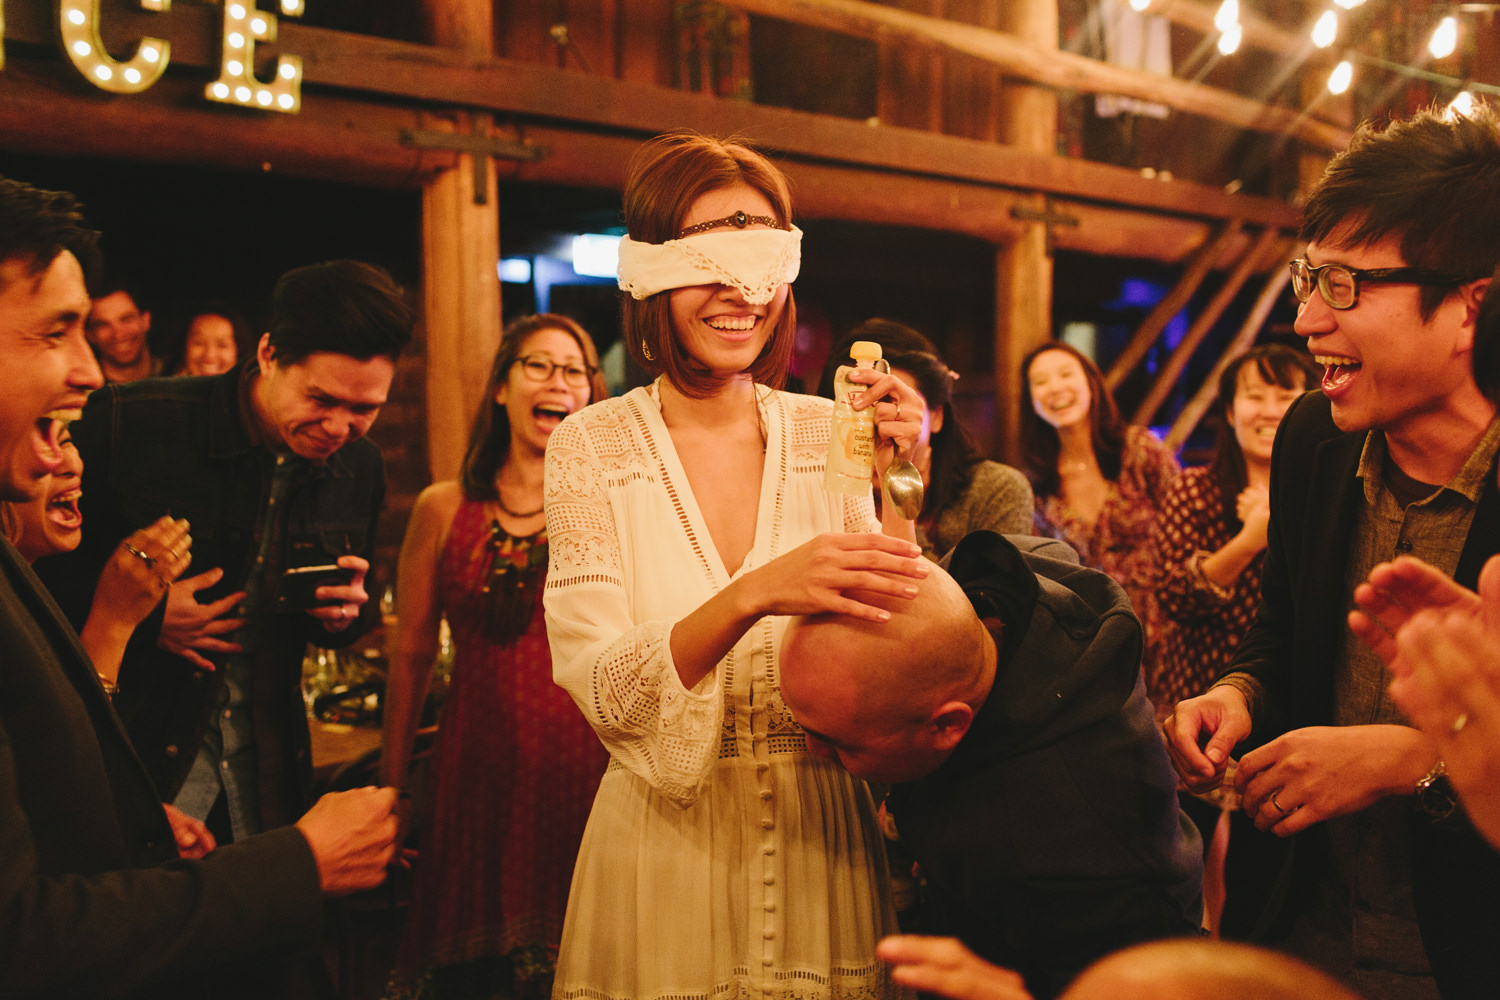 238-Barn_Wedding_Australia_Sam_Ting.jpg